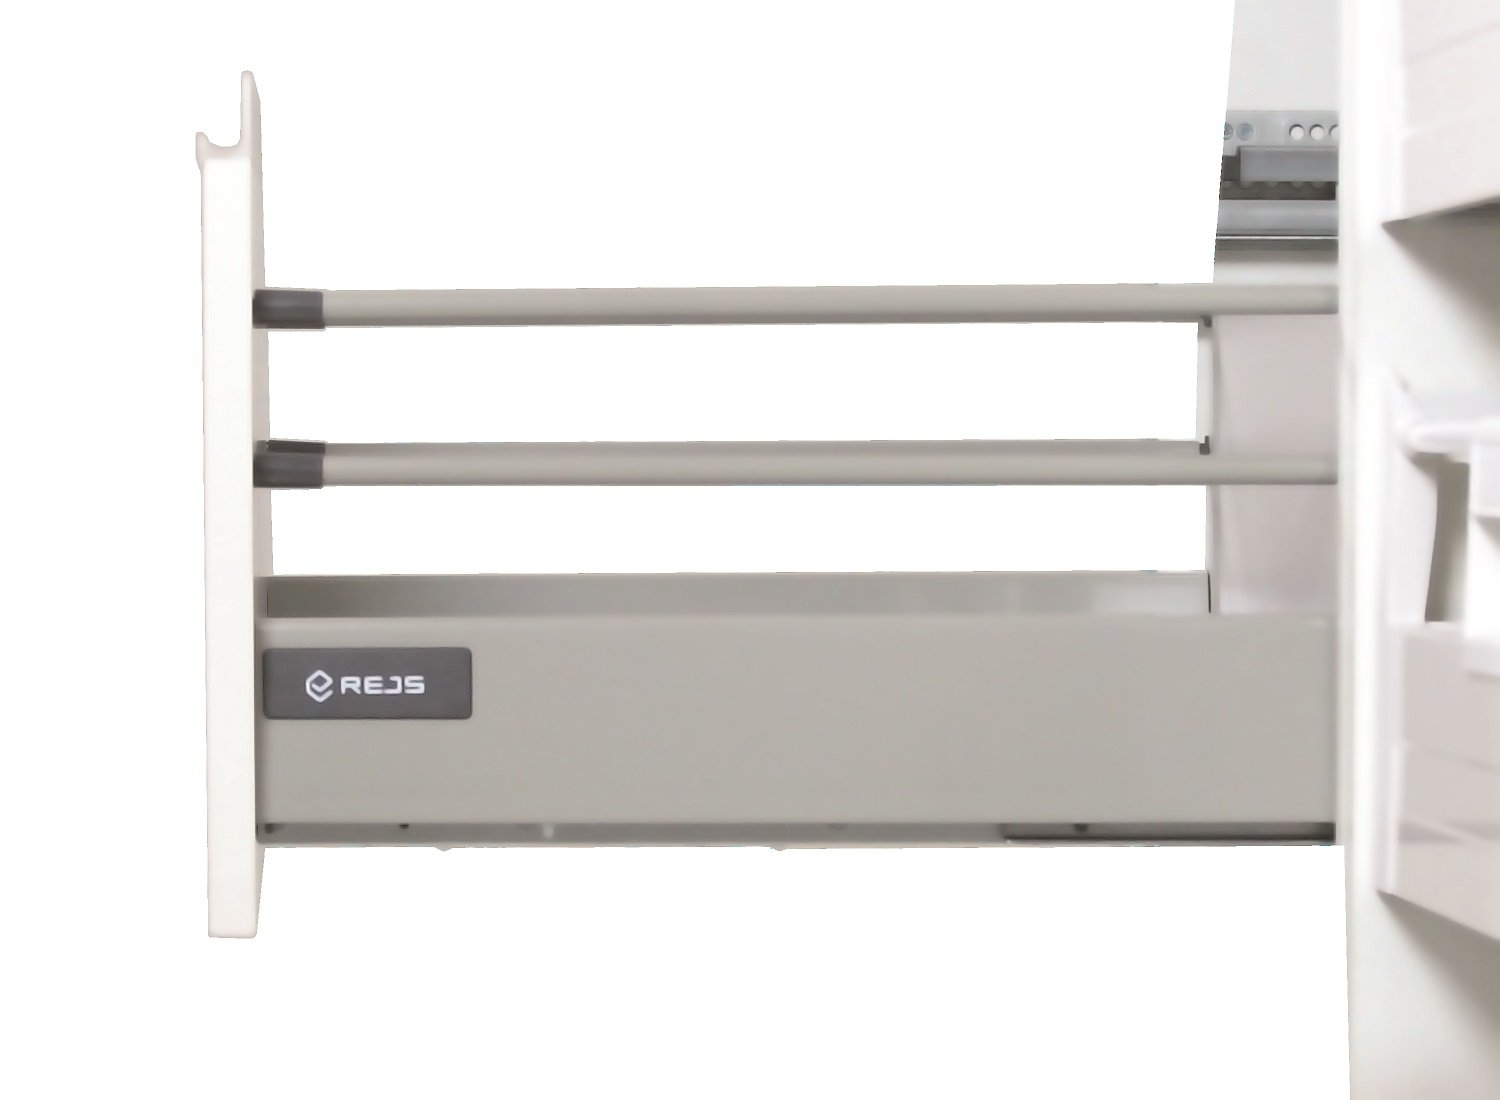 Soft Close Kitchen Drawer Runners System L - 500 - Comfort Box by Rejs round top rail (H = 86mm, White)